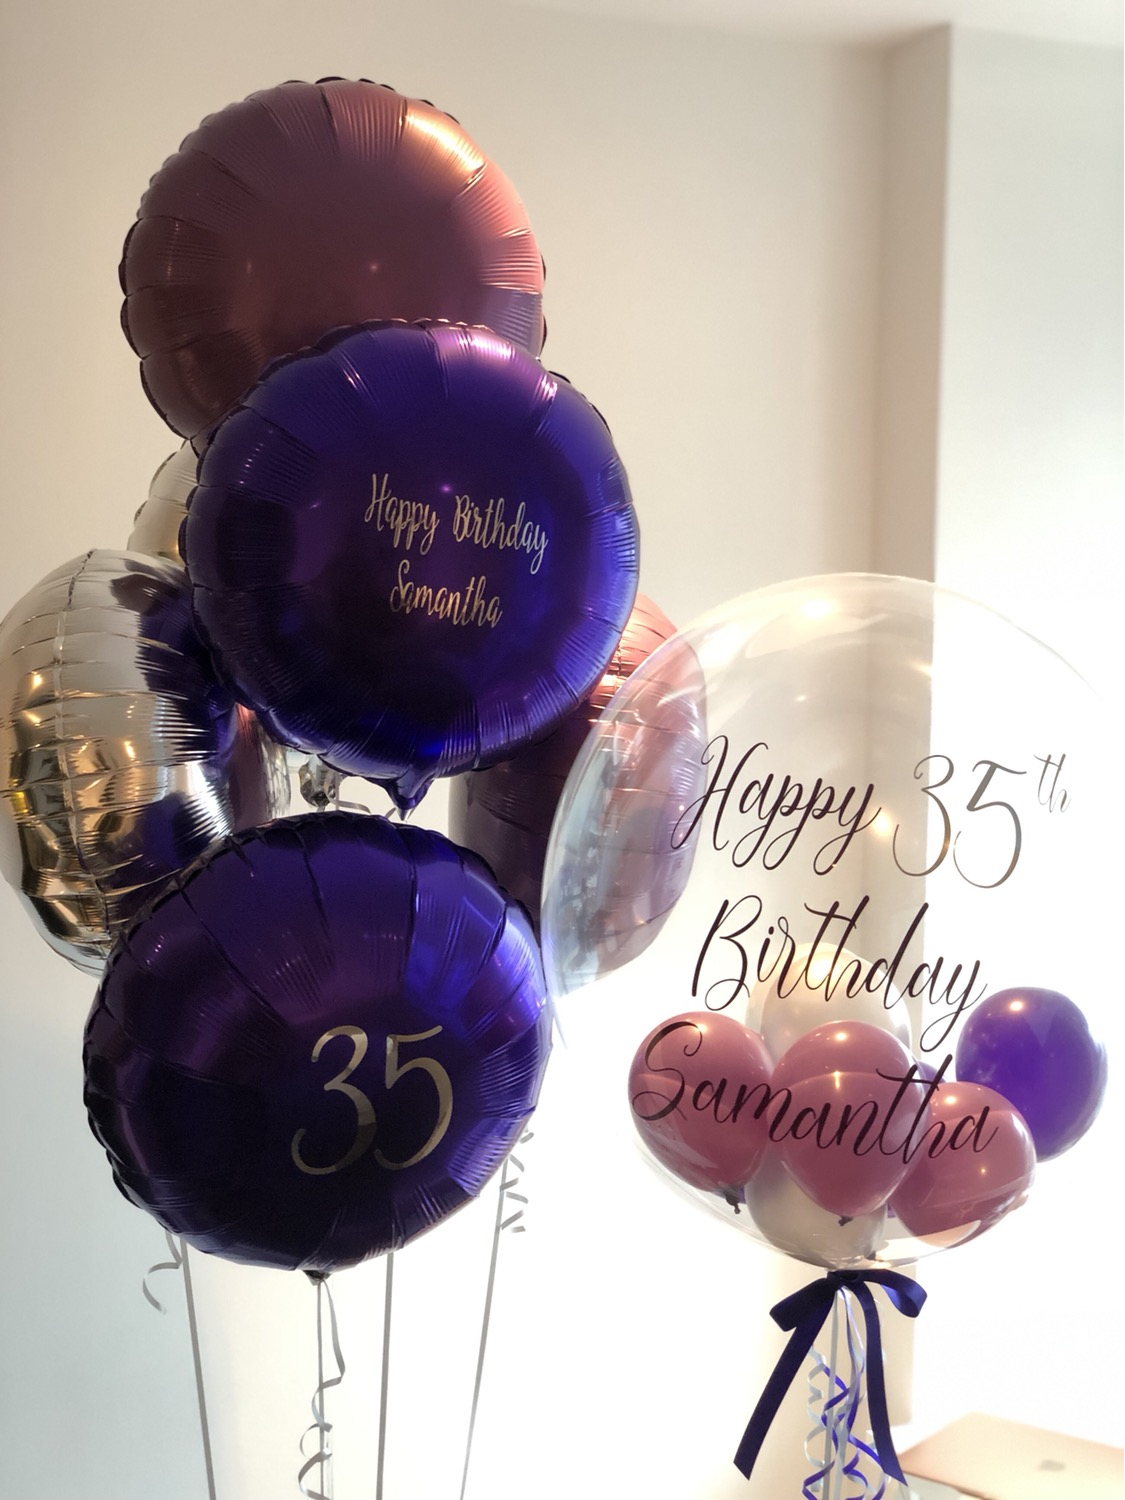 Personalised Silver and Purple Ballooons